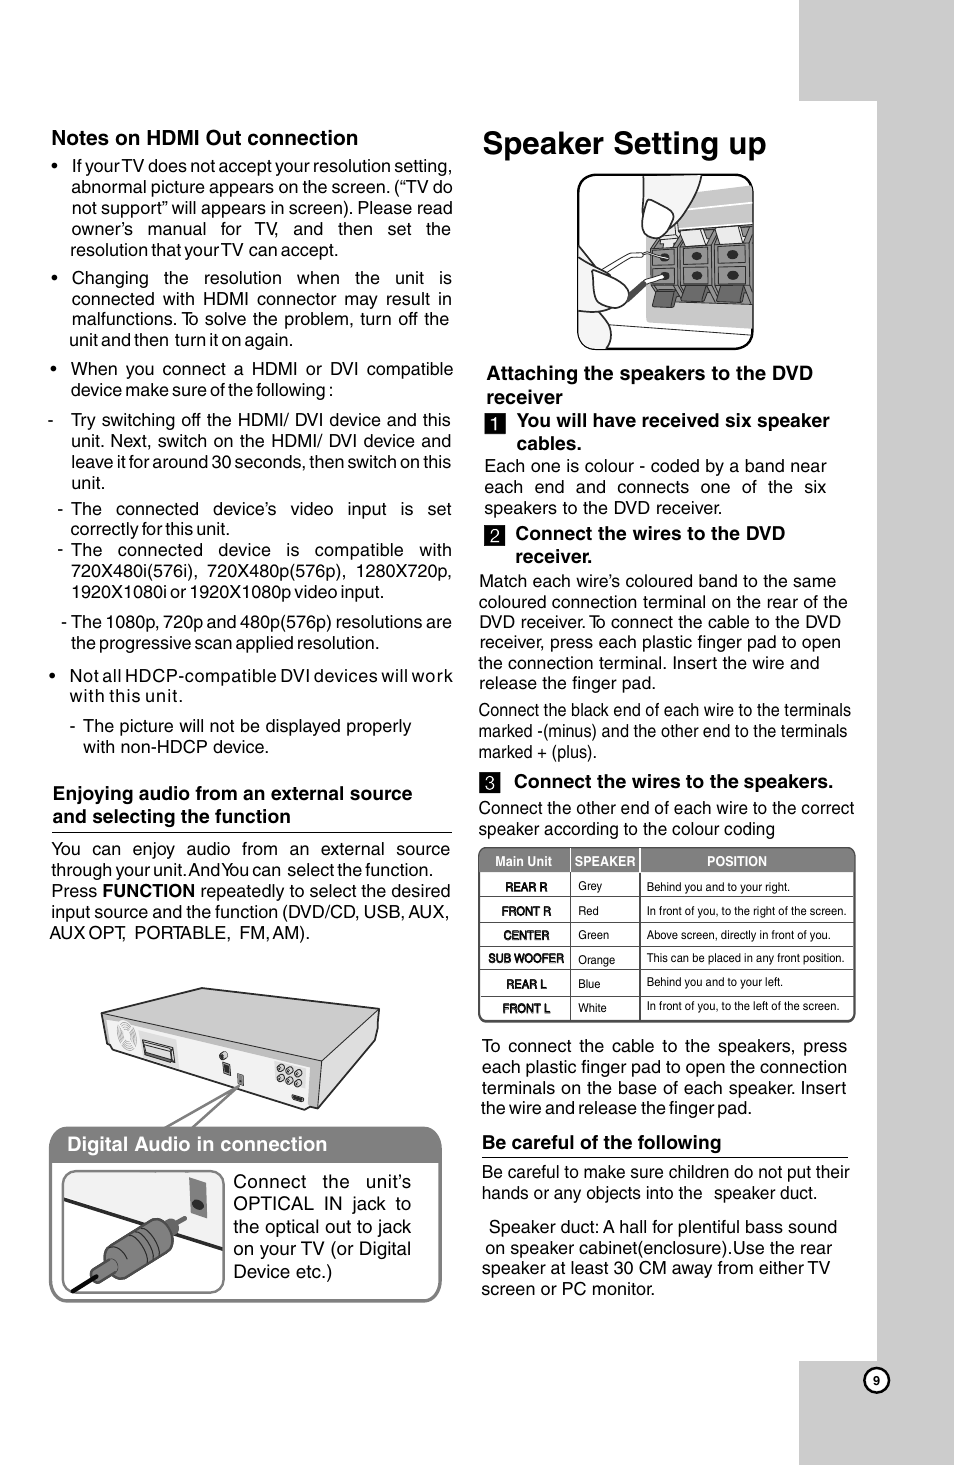 Speaker Setting Up Digital Audio In Connection Lg Ht924sf User Do All Hdmi Wiring Schematic Manual Page 9 24